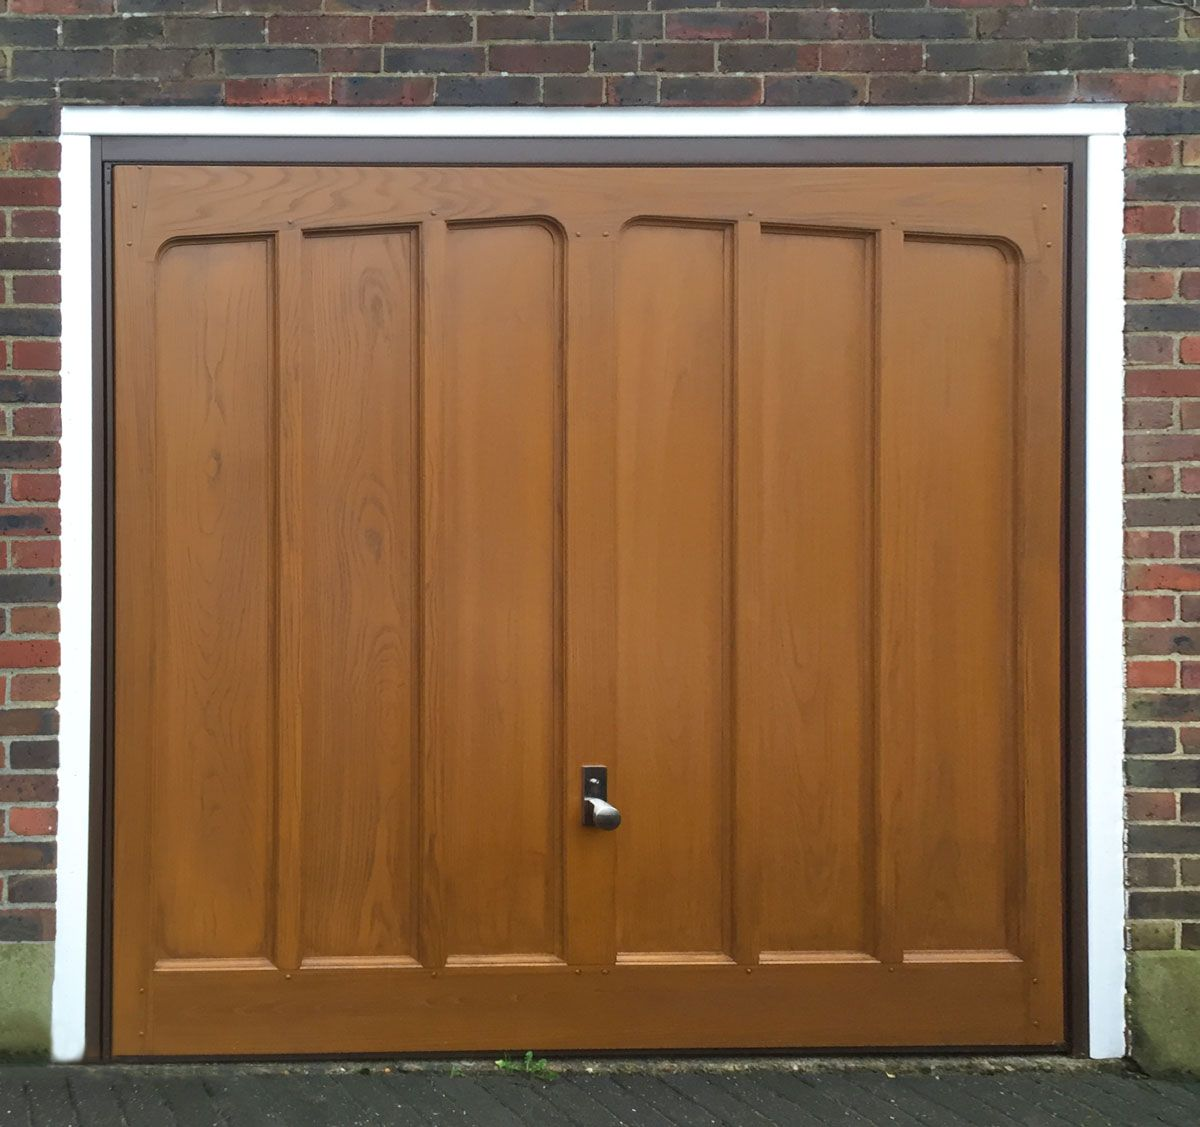 Garage Door Repairs Installation Automation Throughout London And South East Access Garage Doors Garage Doors Garage Door Repair